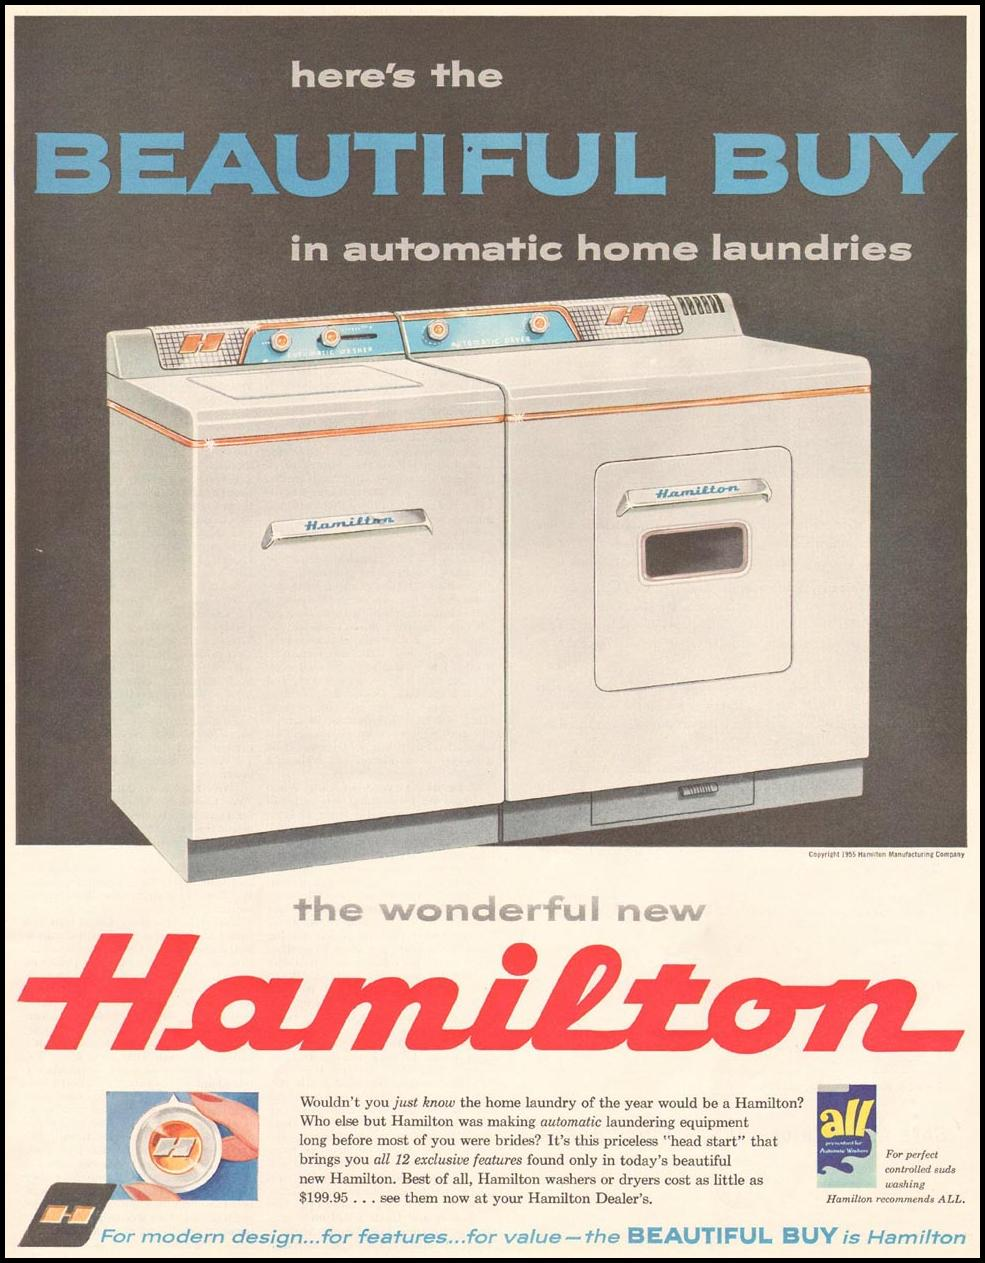 HAMILTON WASHING MACHINES SATURDAY EVENING POST 03/26/1955 p. 160